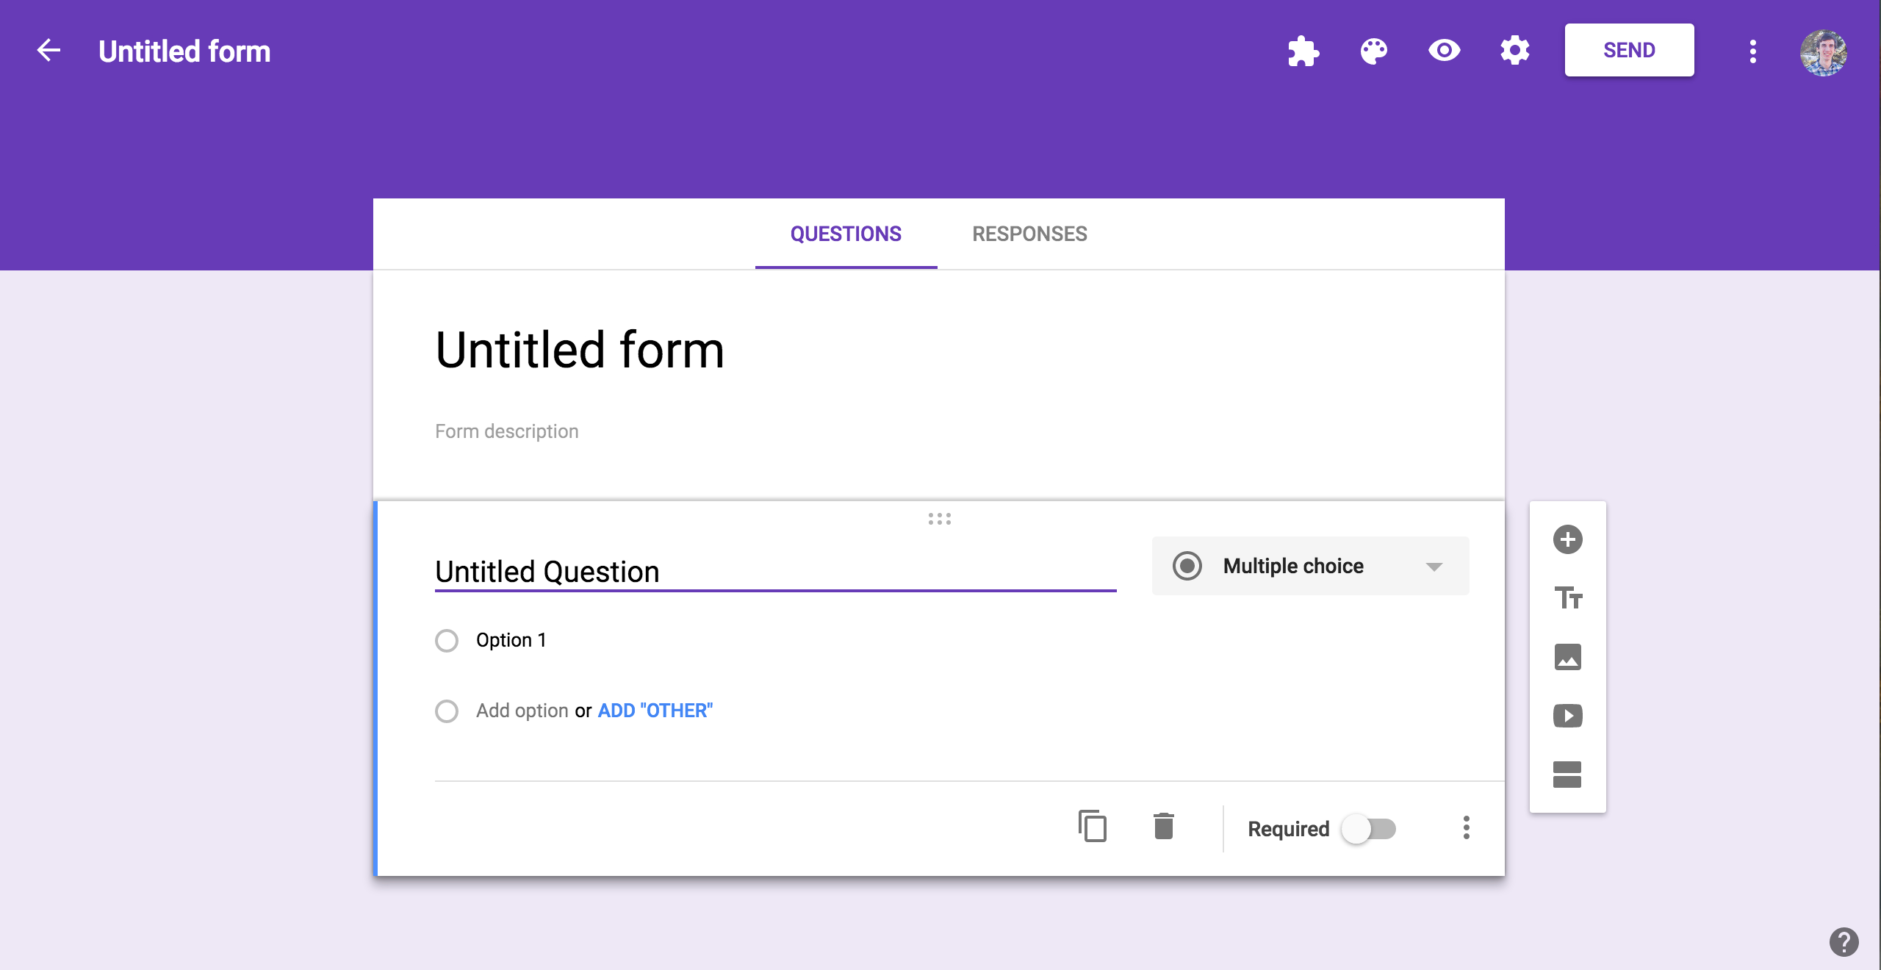 Forms Google Com Spreadsheet In Google Forms Guide: Everything You Need To Make Great Forms For Free